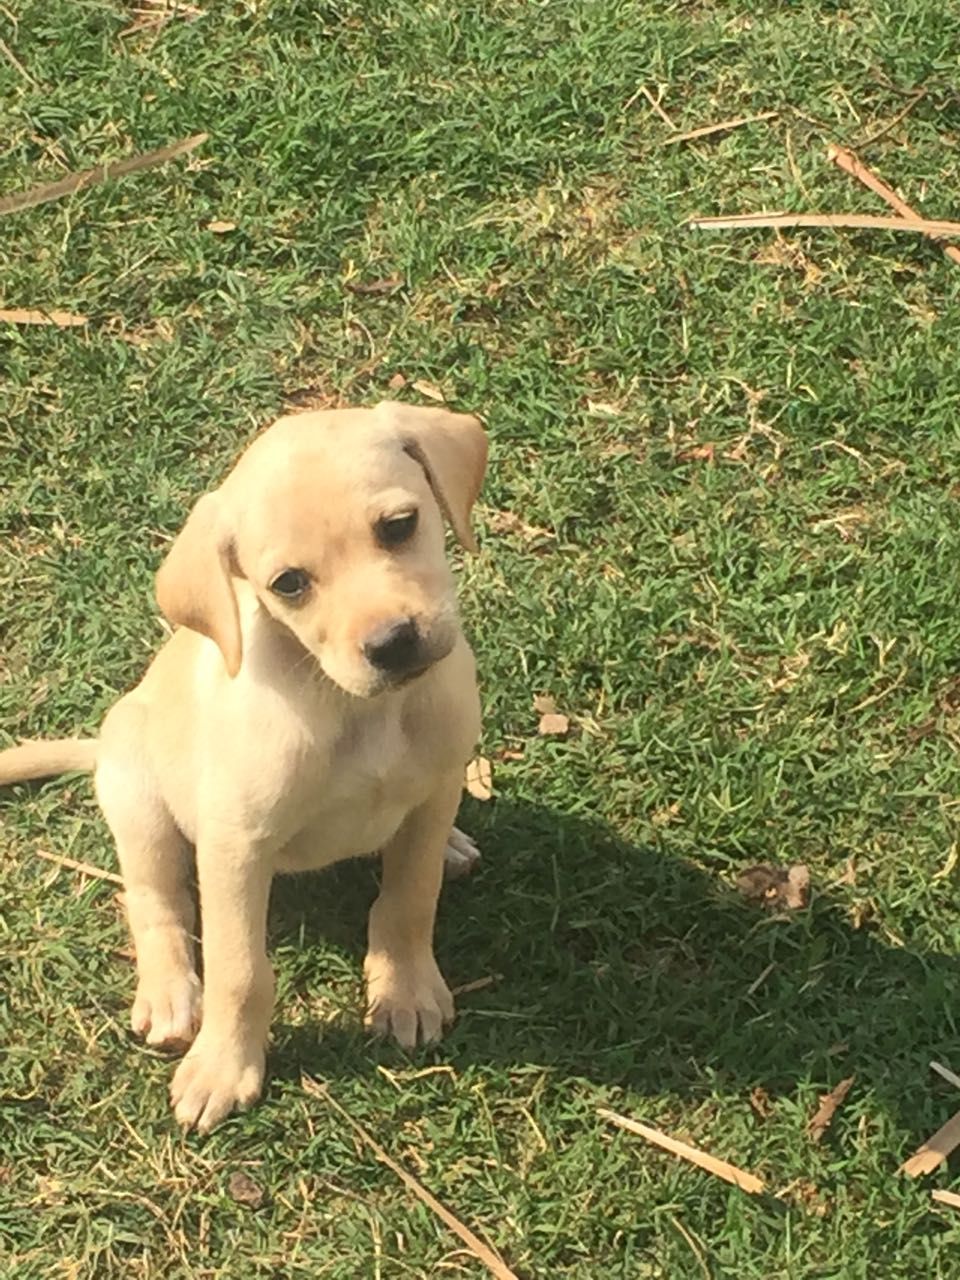 8wk old, male Labrador puppy looking for a good home.